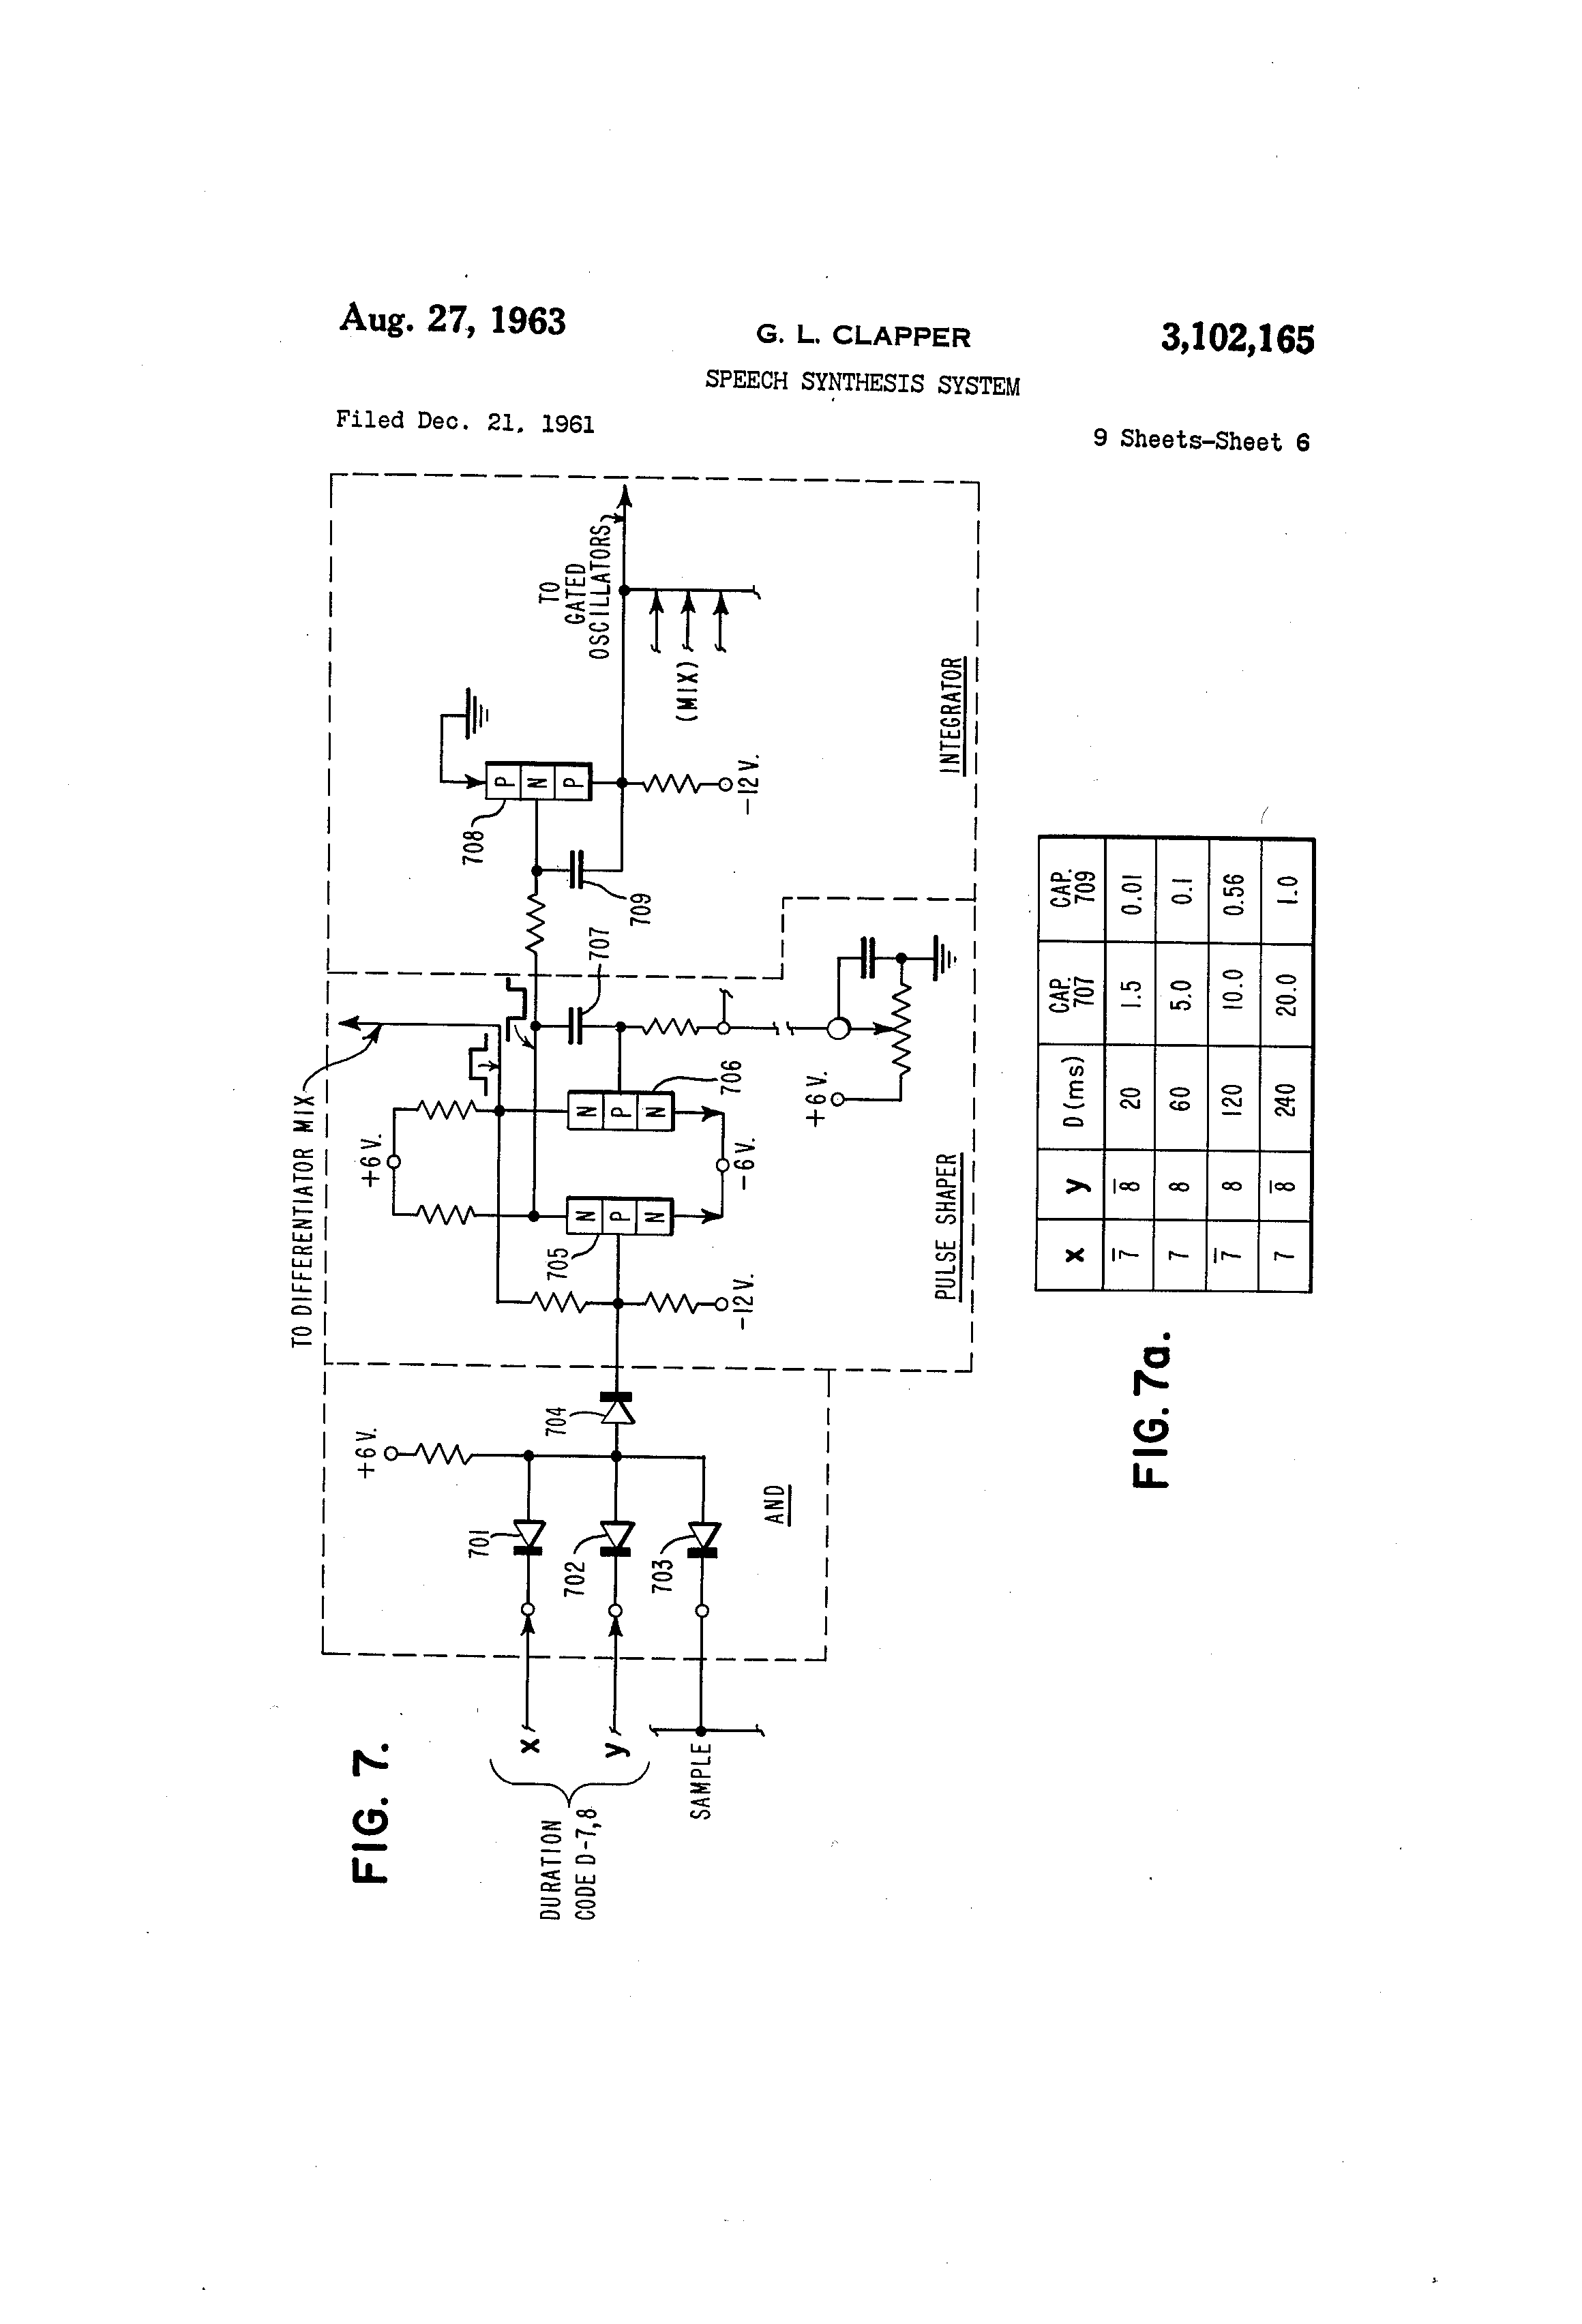 system speech synthesis